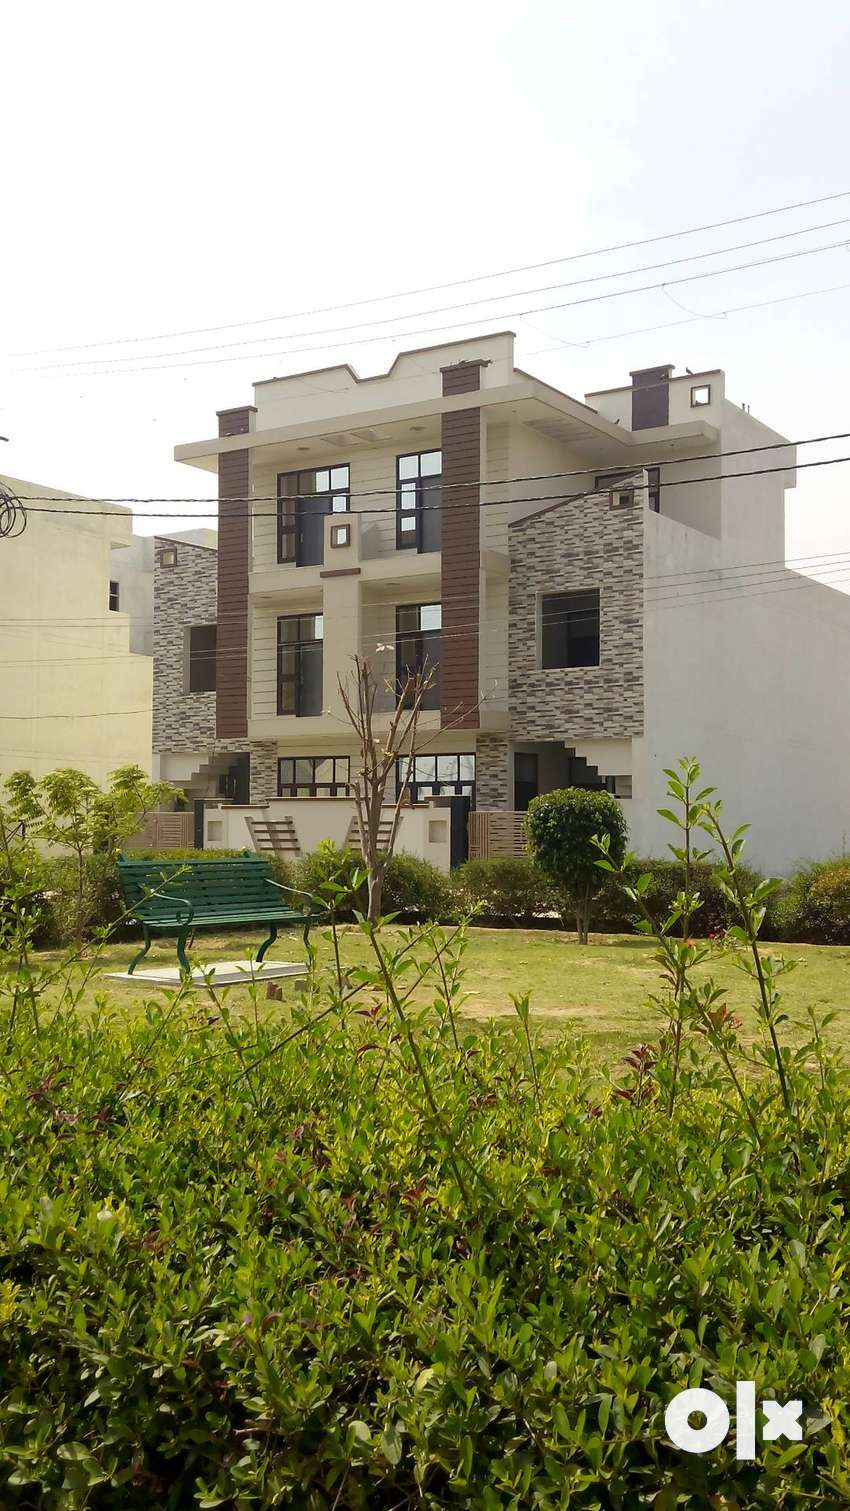 [FOR SALE] 136 SQ YARD RESIDENTIAL DUPLEX HOUSE NEAR TO JAGRITI VIHAR 0